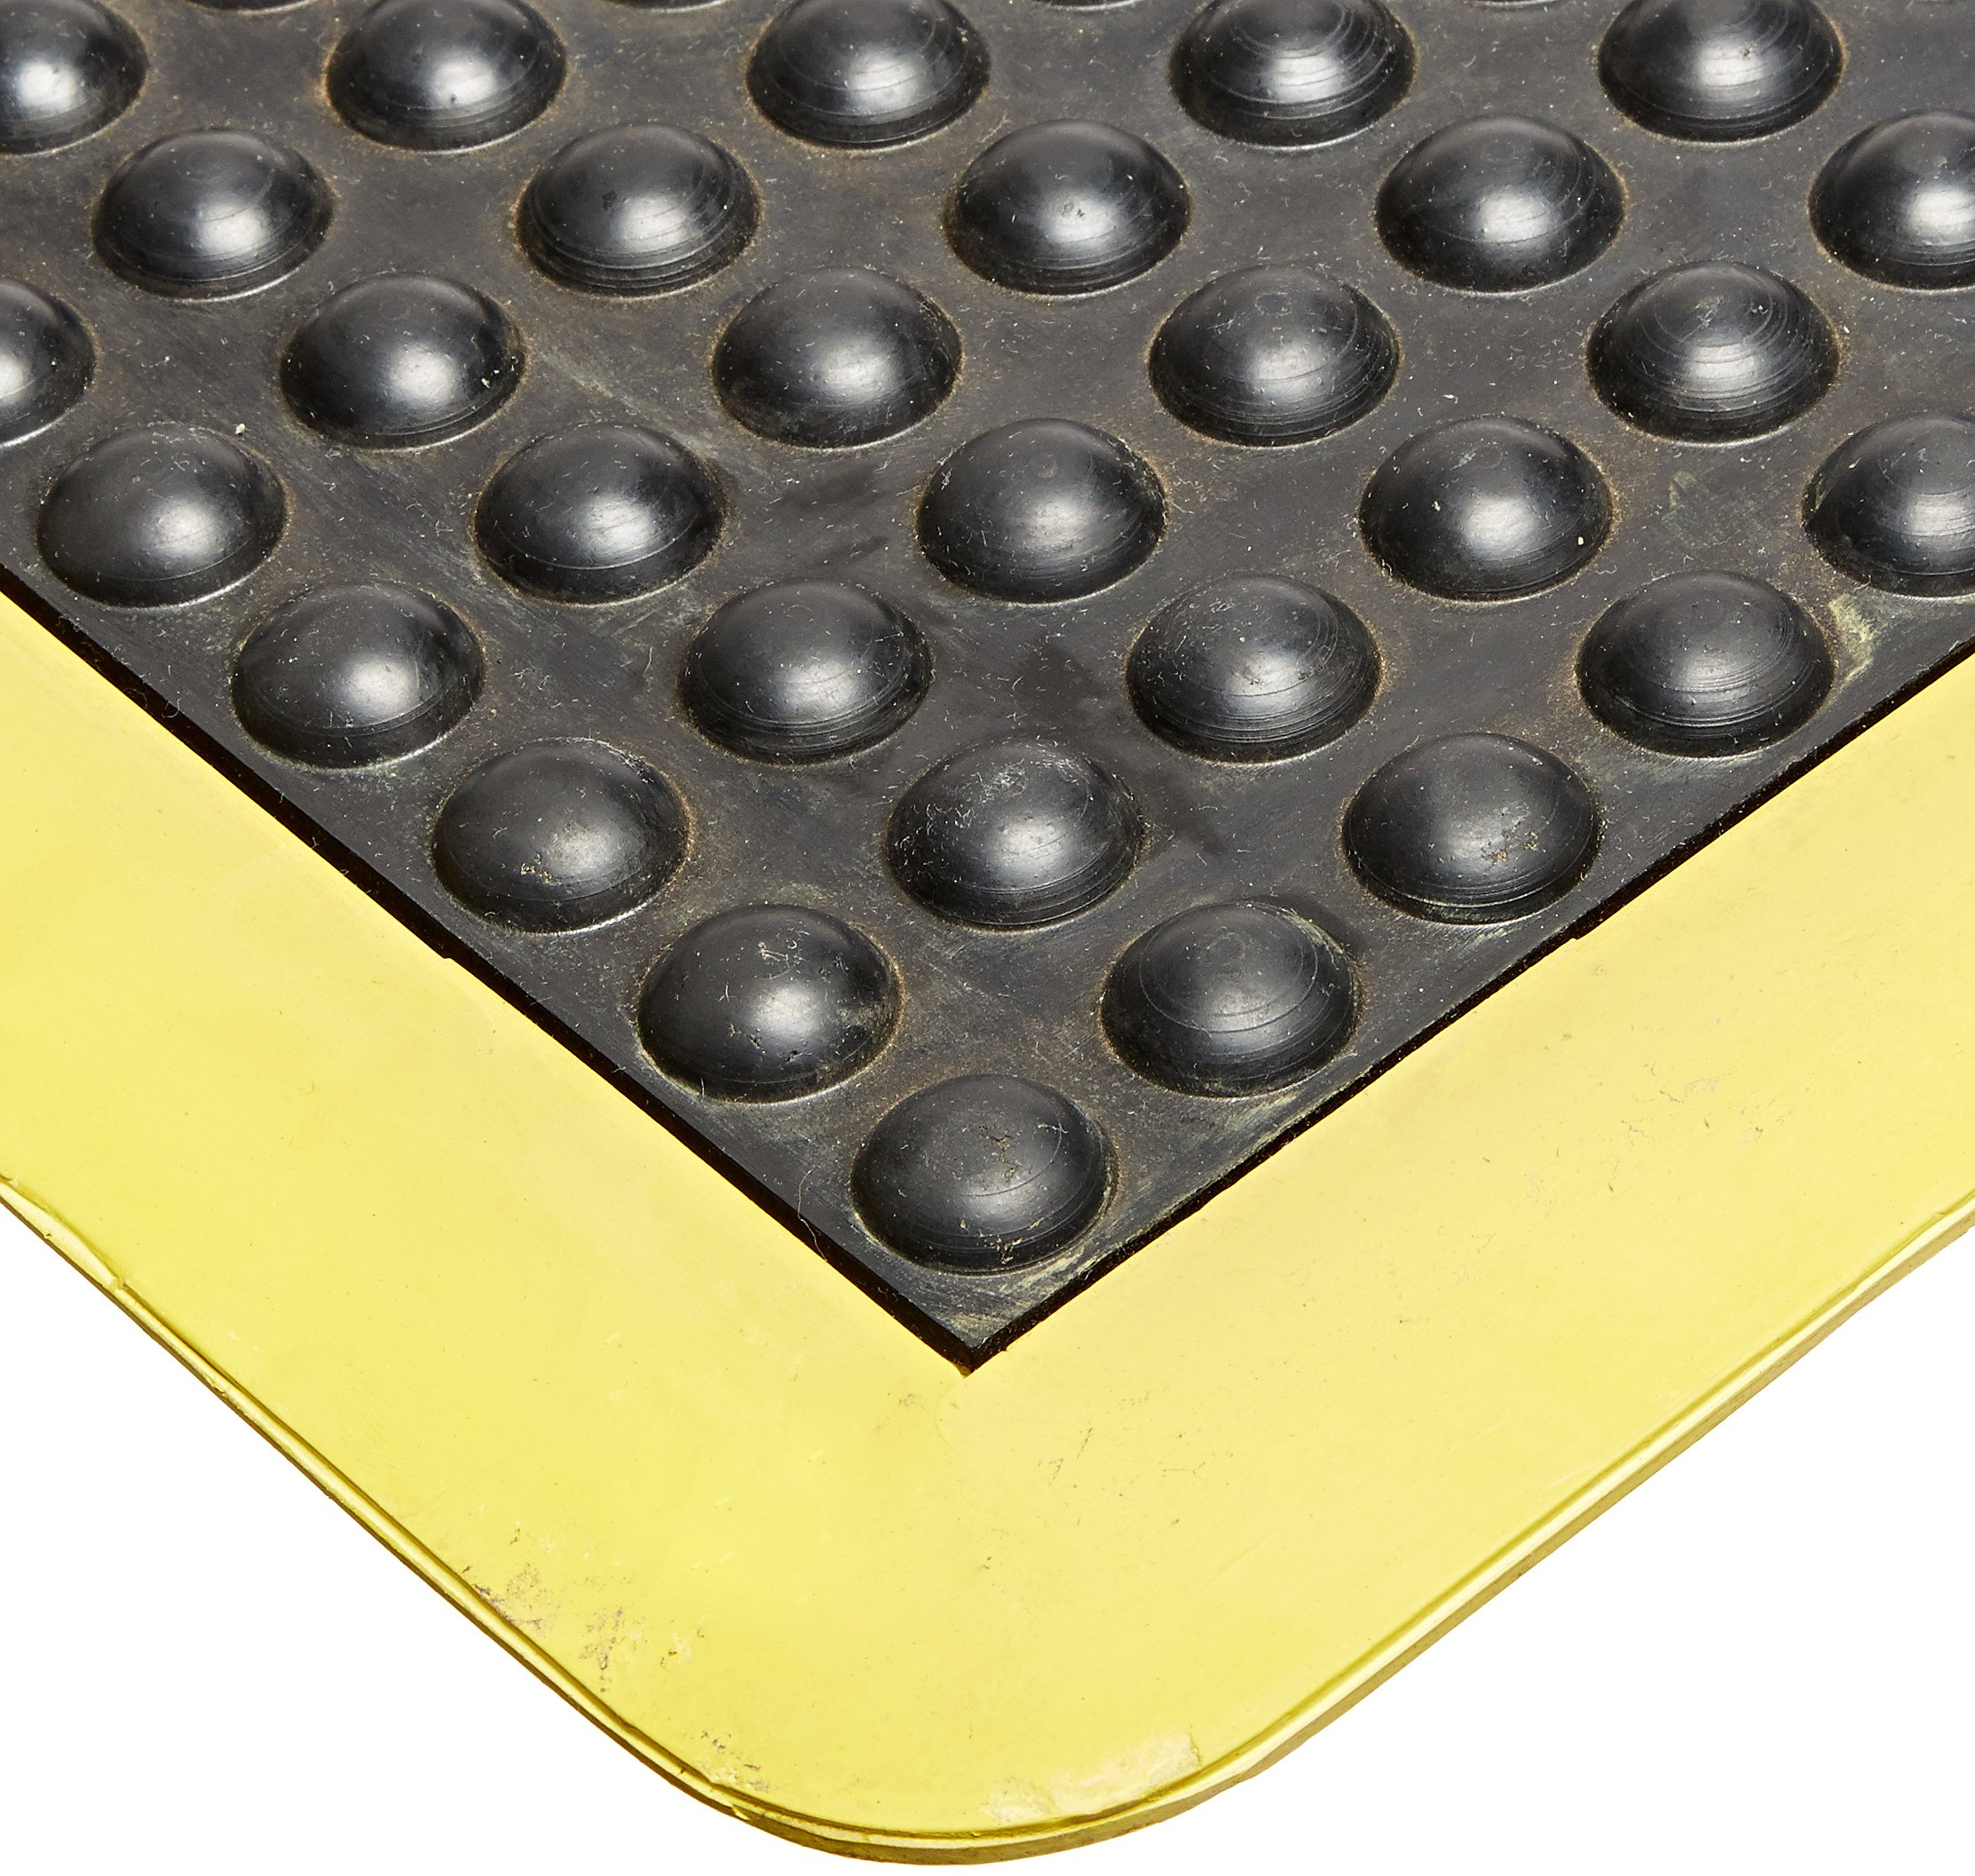 Rhino Mats UD2436SY Ultra-Dome Workstation Anti-Fatigue Welding Mat, 2' Width x 3' Length x 3/4'' Thickness, Black/Yellow